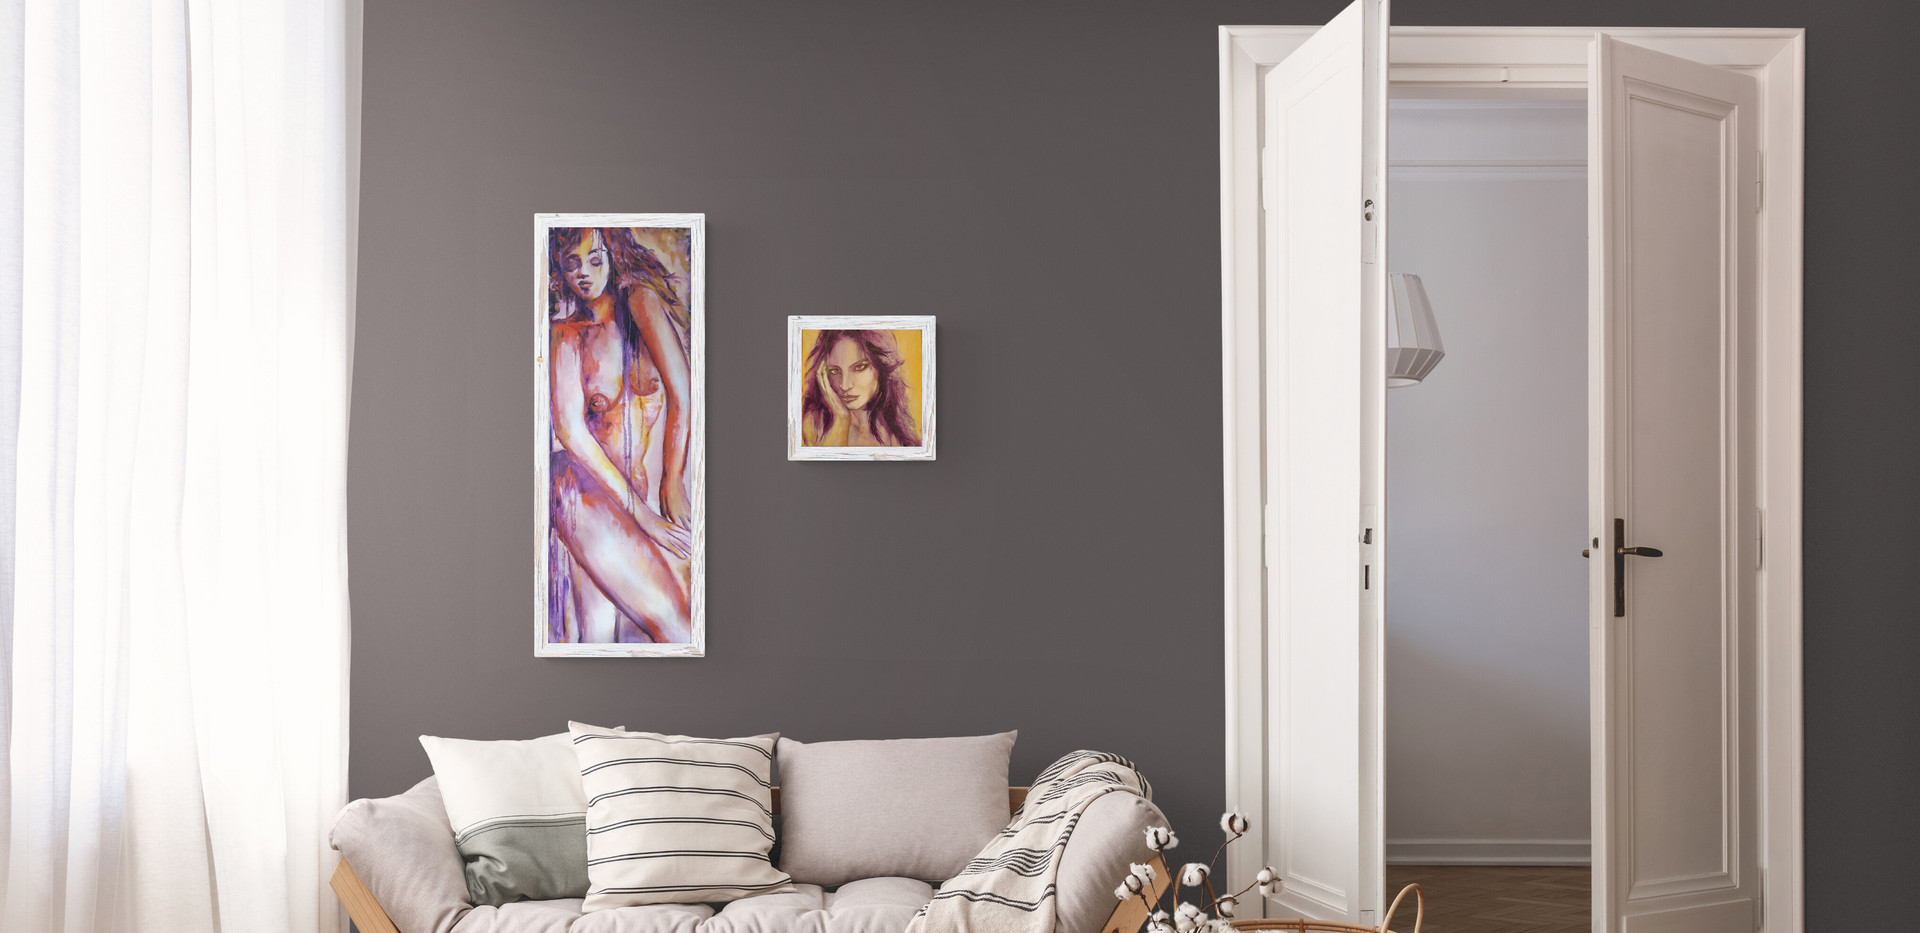 oil-painting-nude-woman-canva